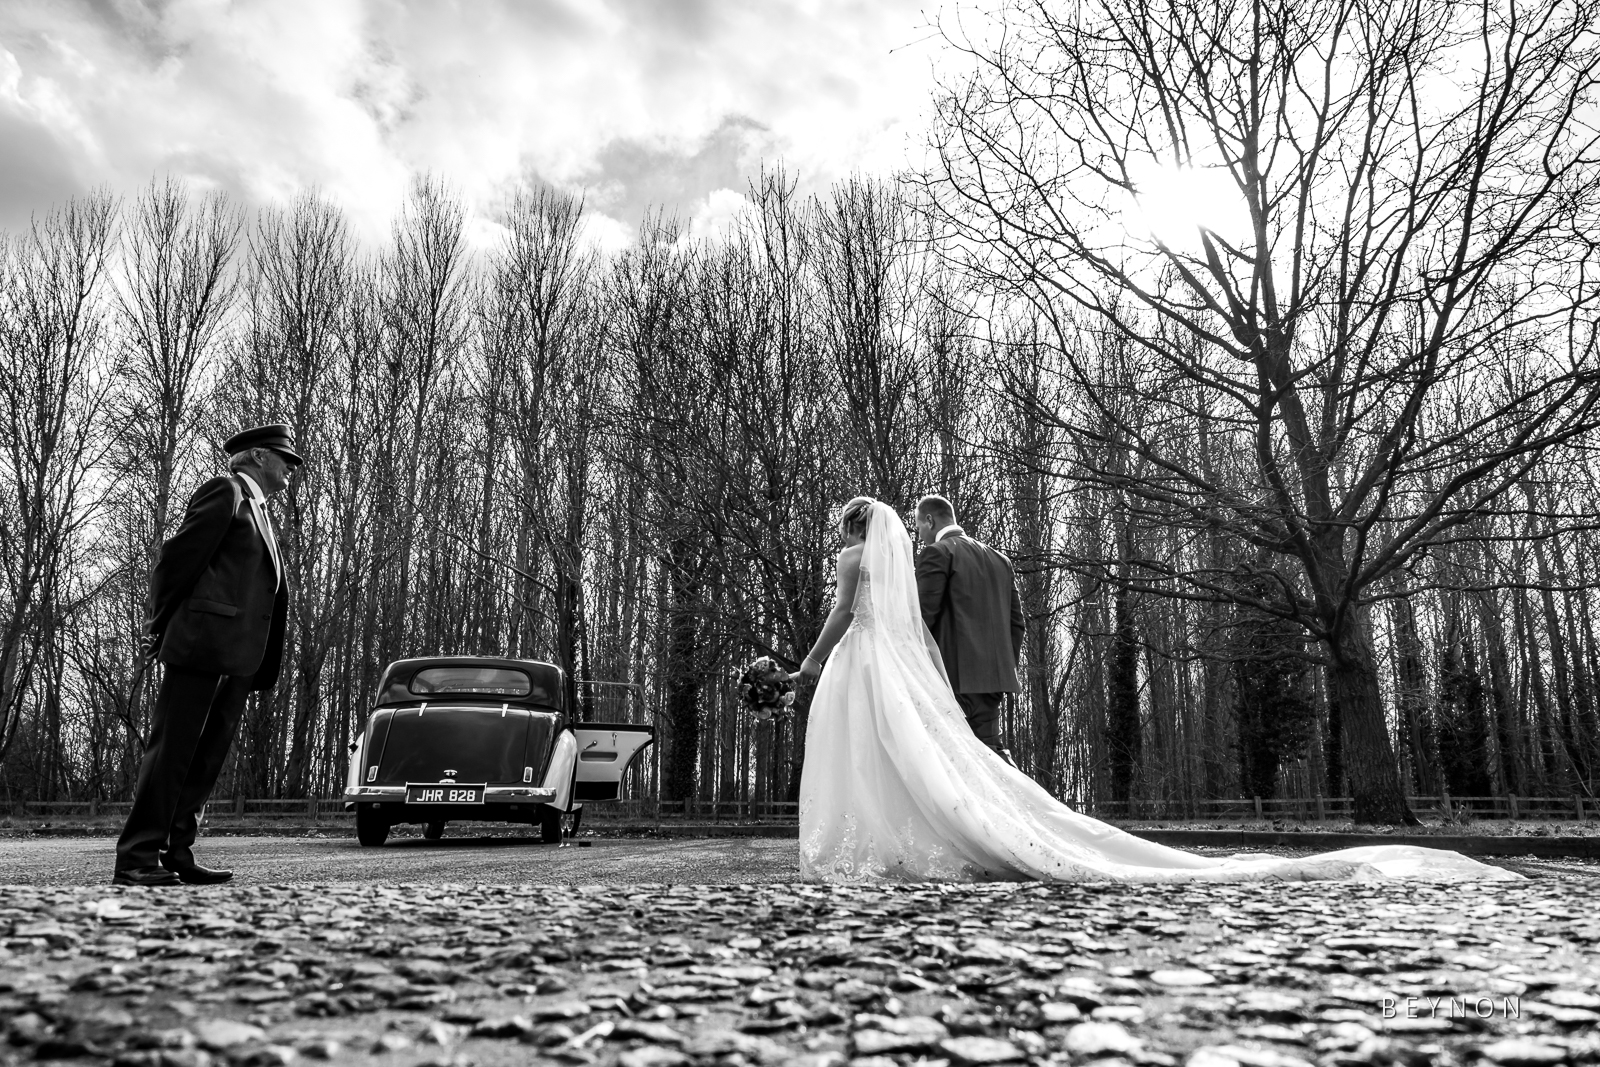 The Bride and Groom walk back to their car